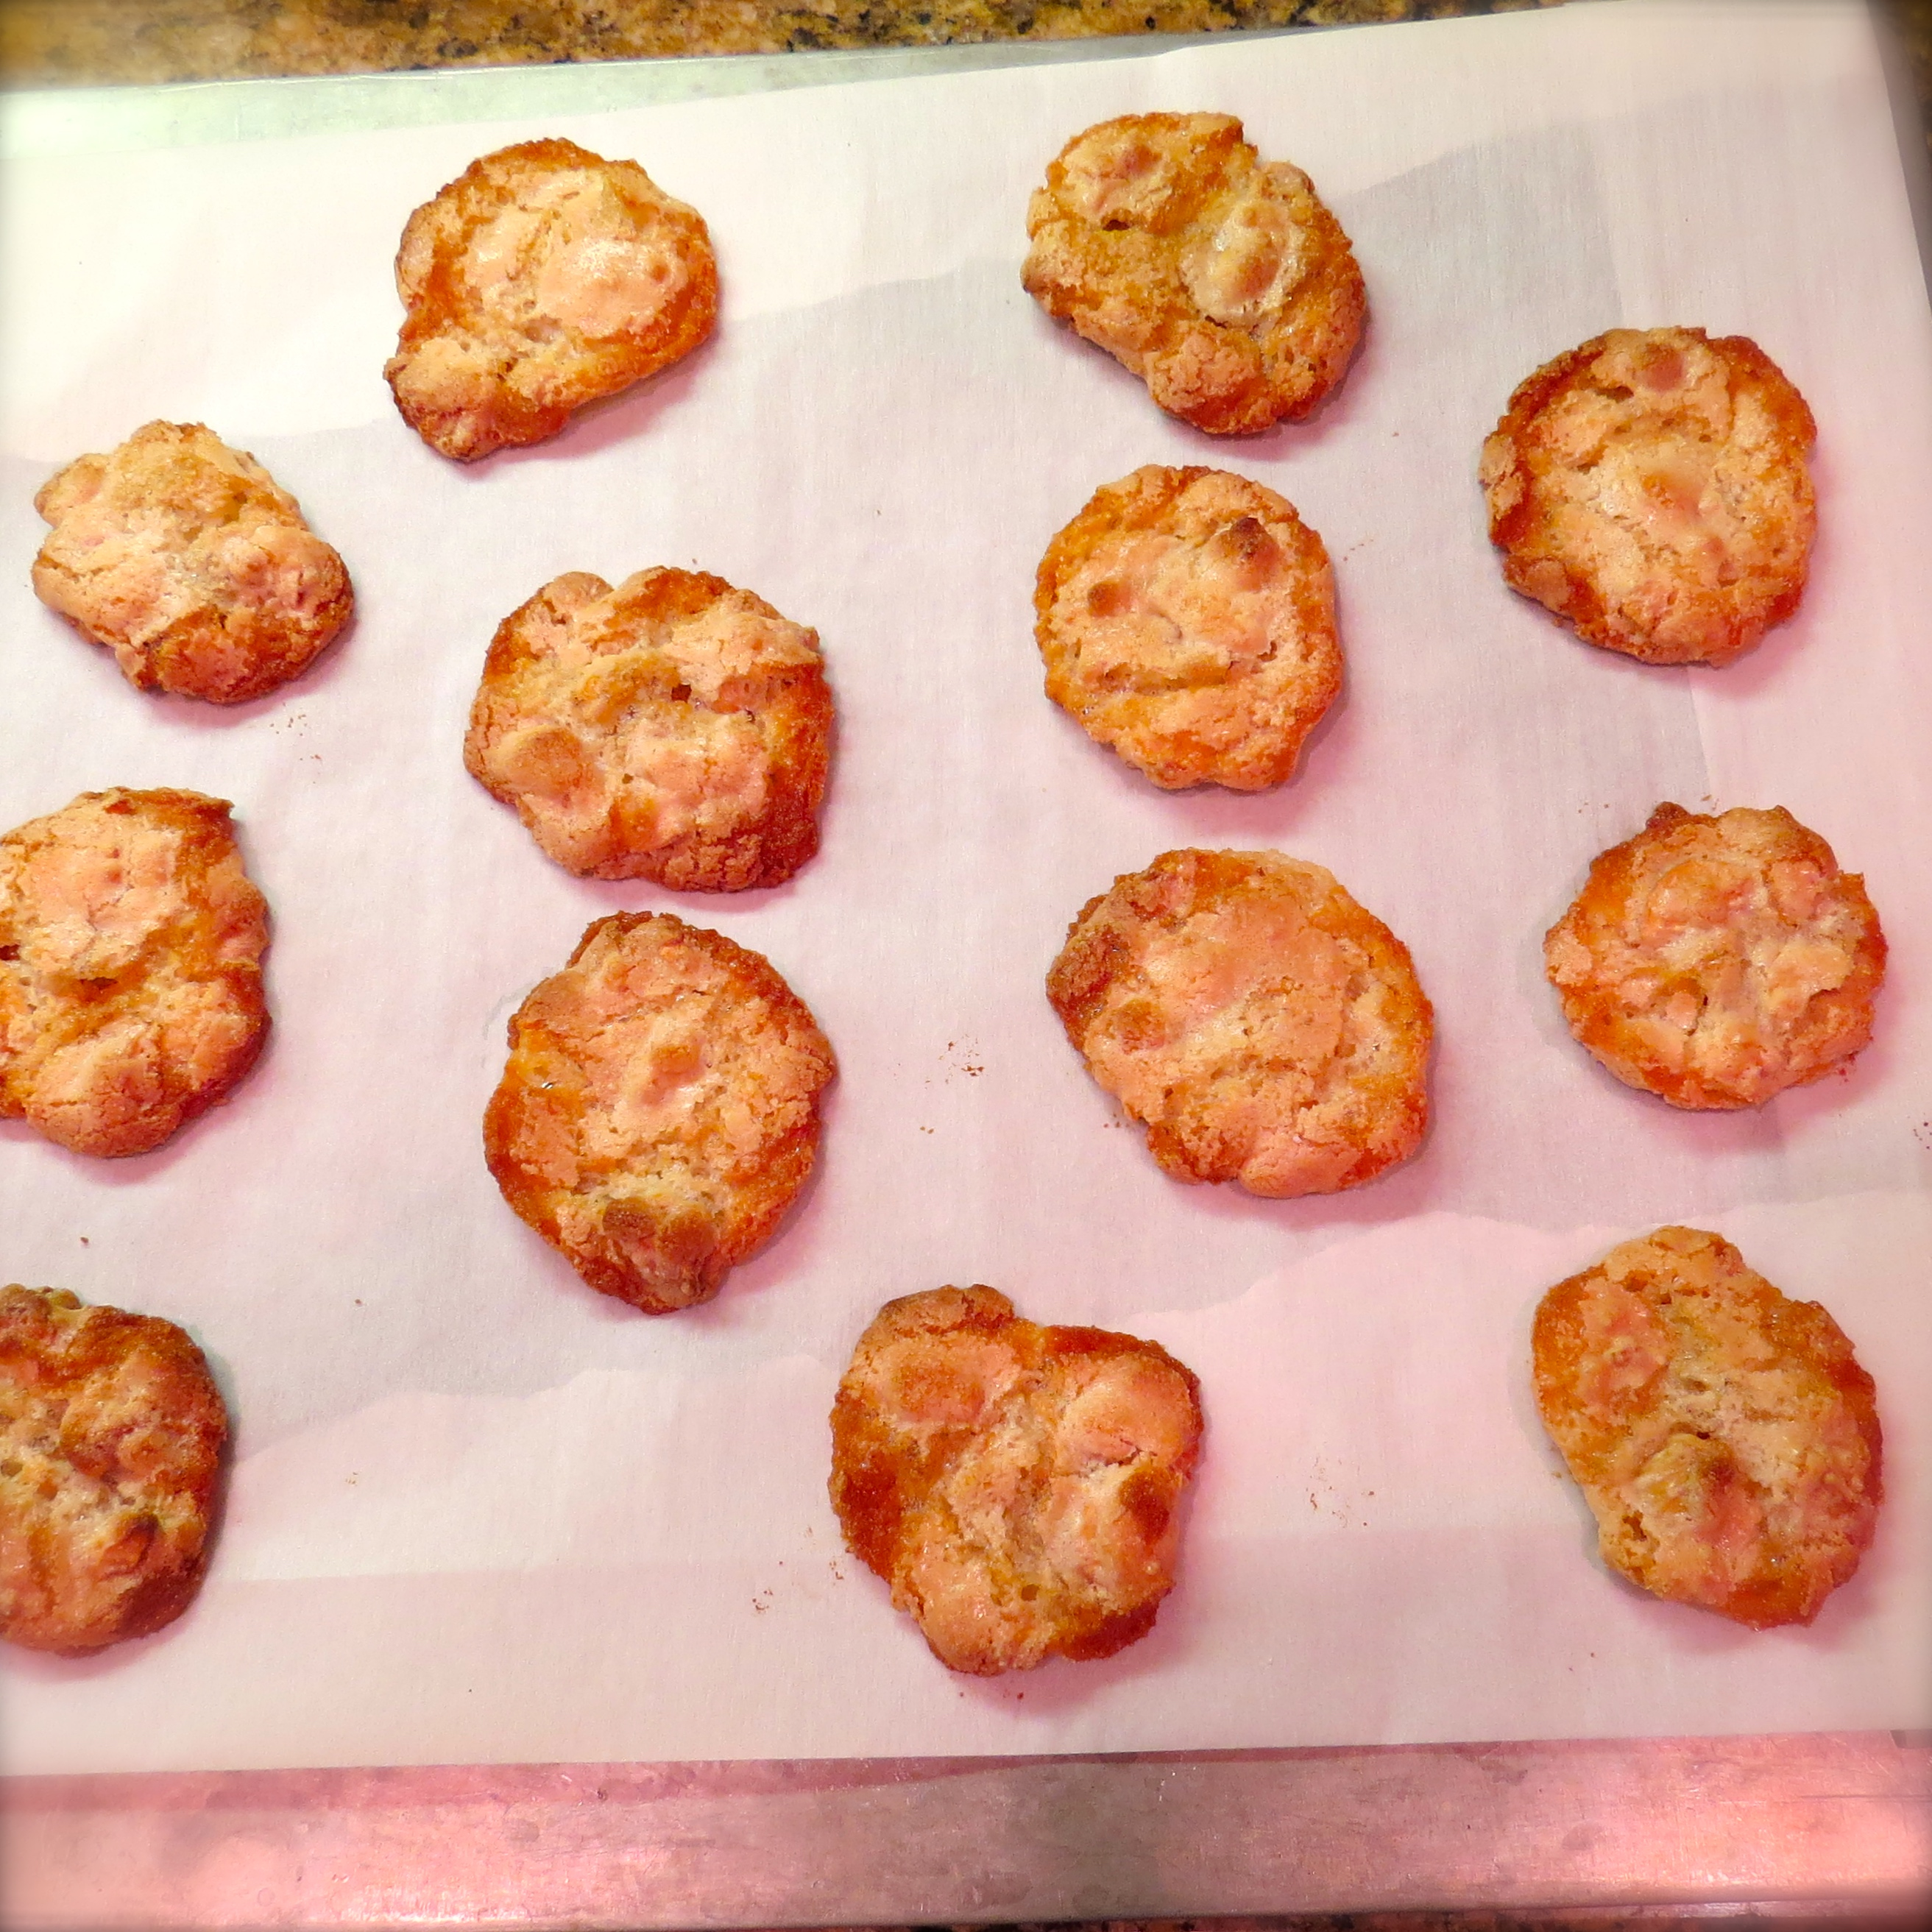 After removing the cookies from the oven,transfer the baking sheet to a cooling rack for 10 minutes.